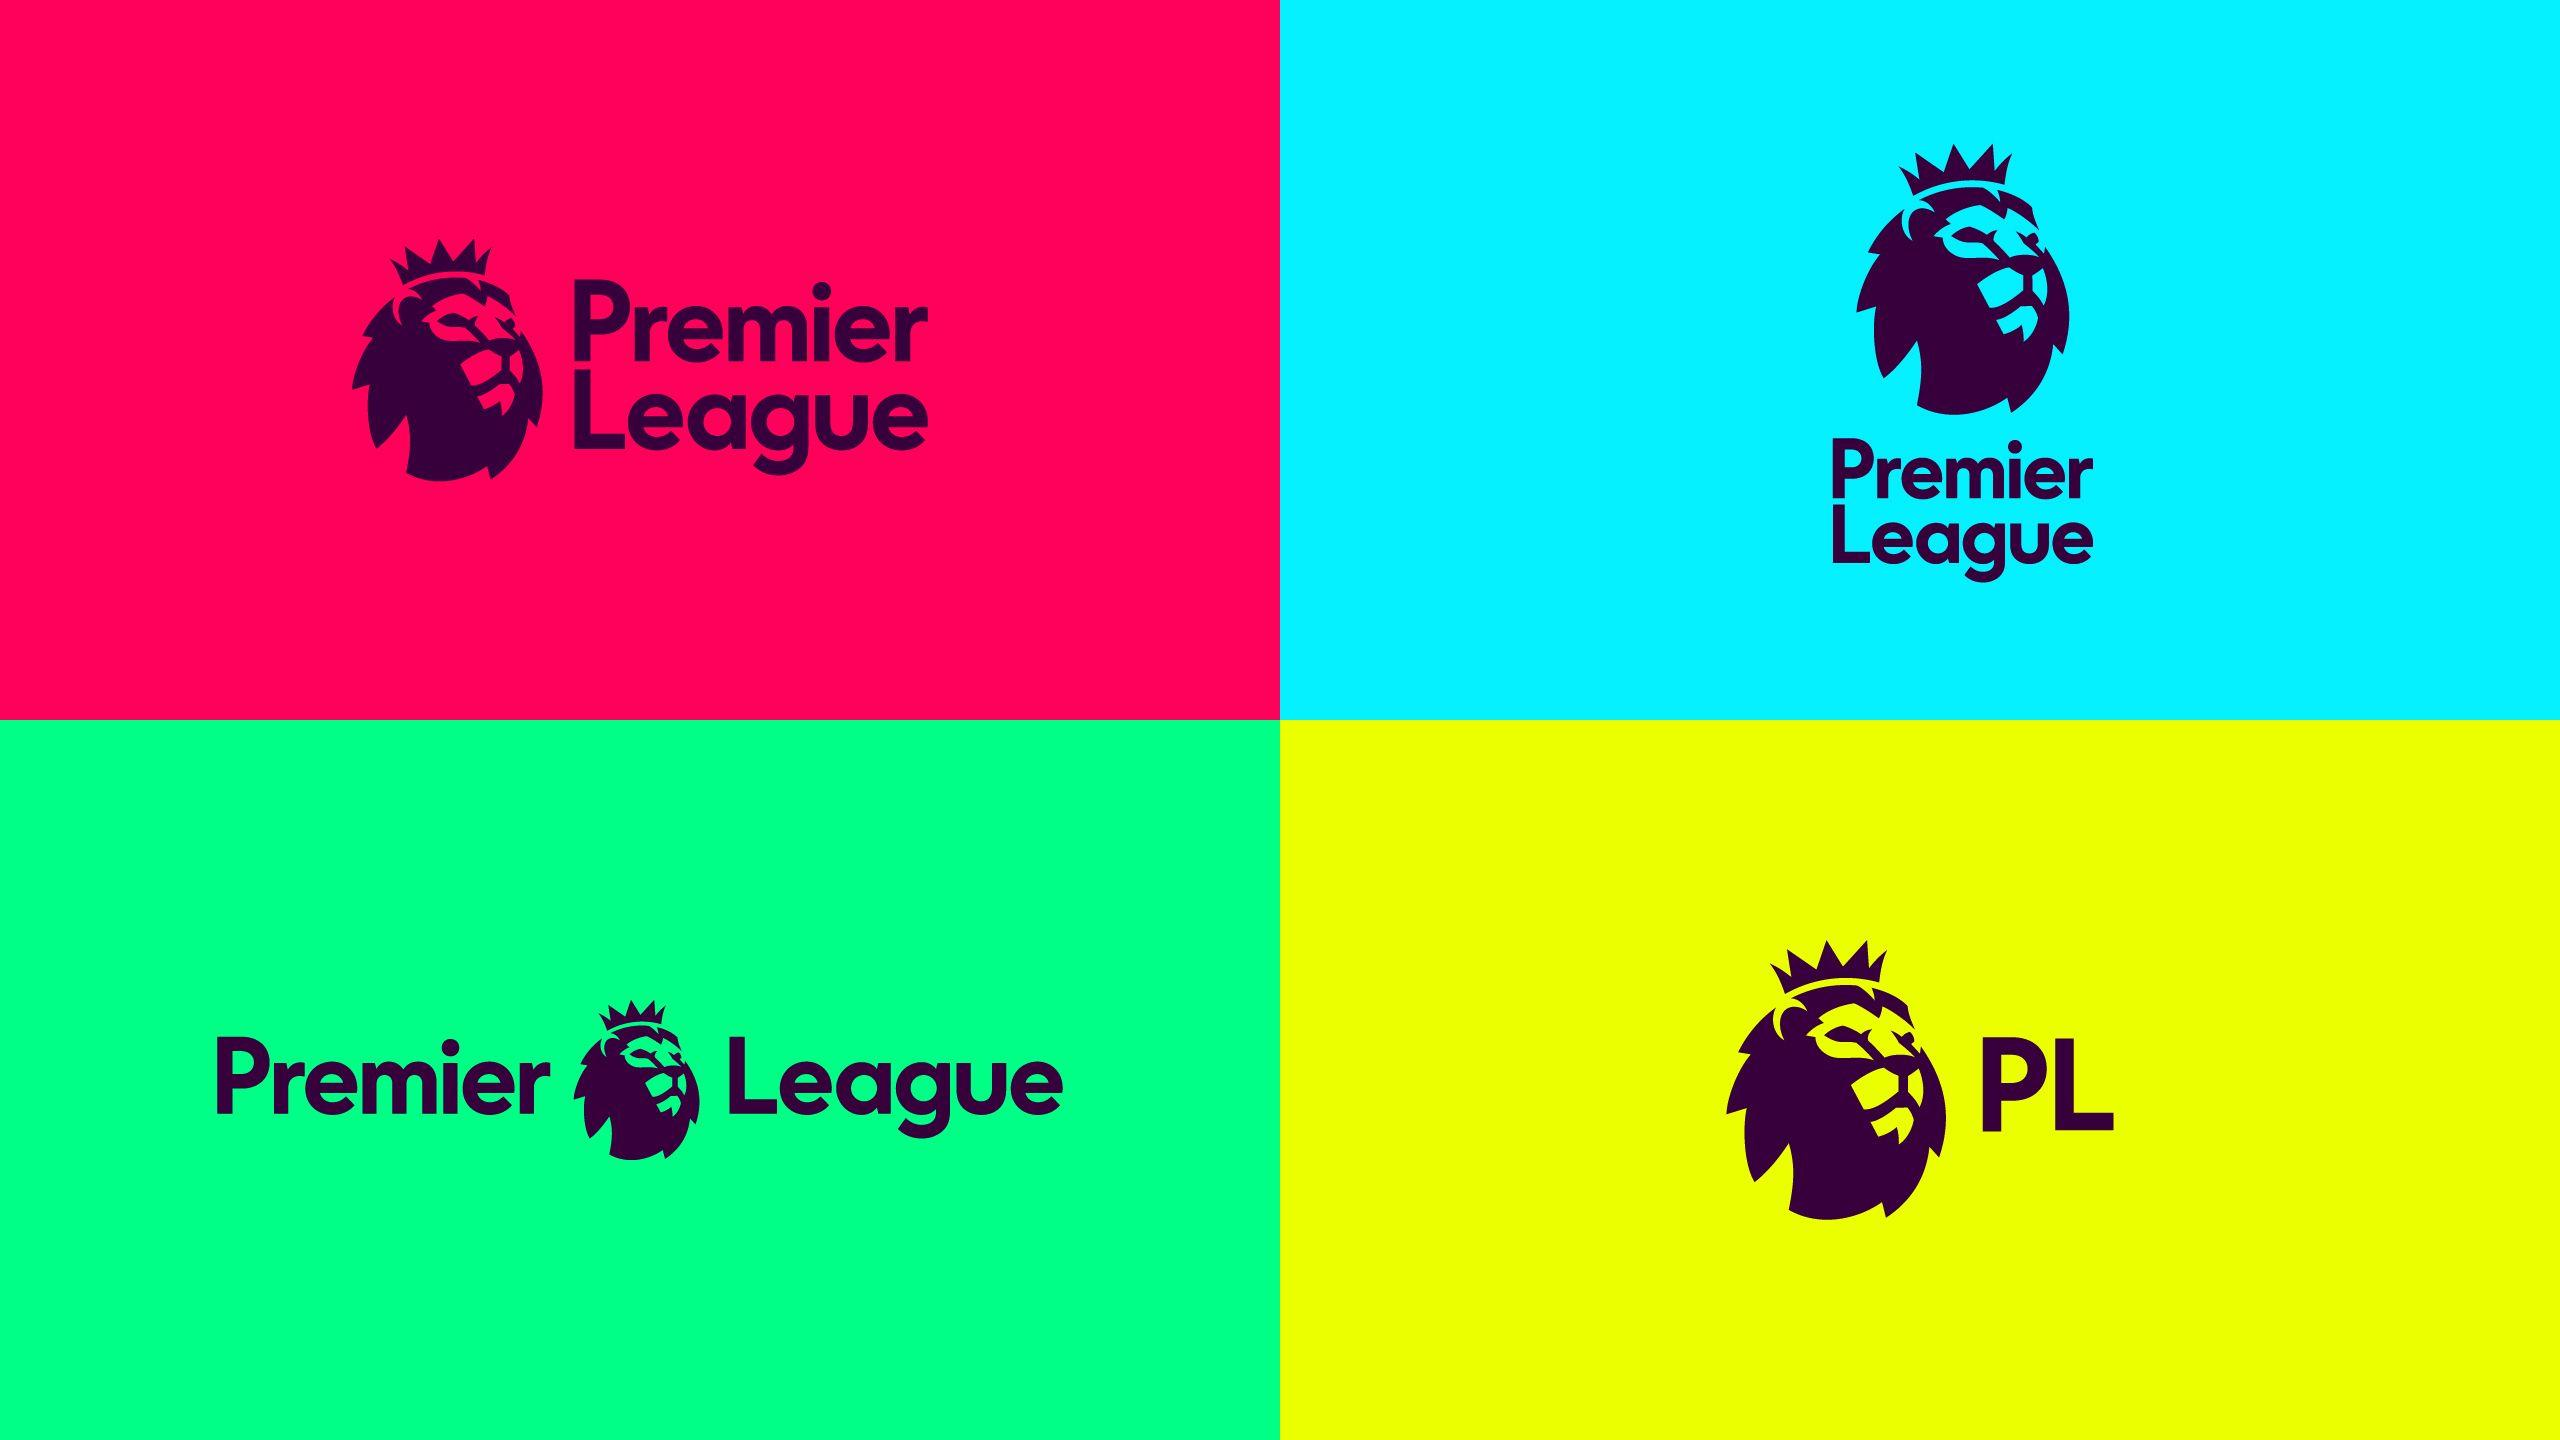 Premier League Wallpapers Wallpaper Cave